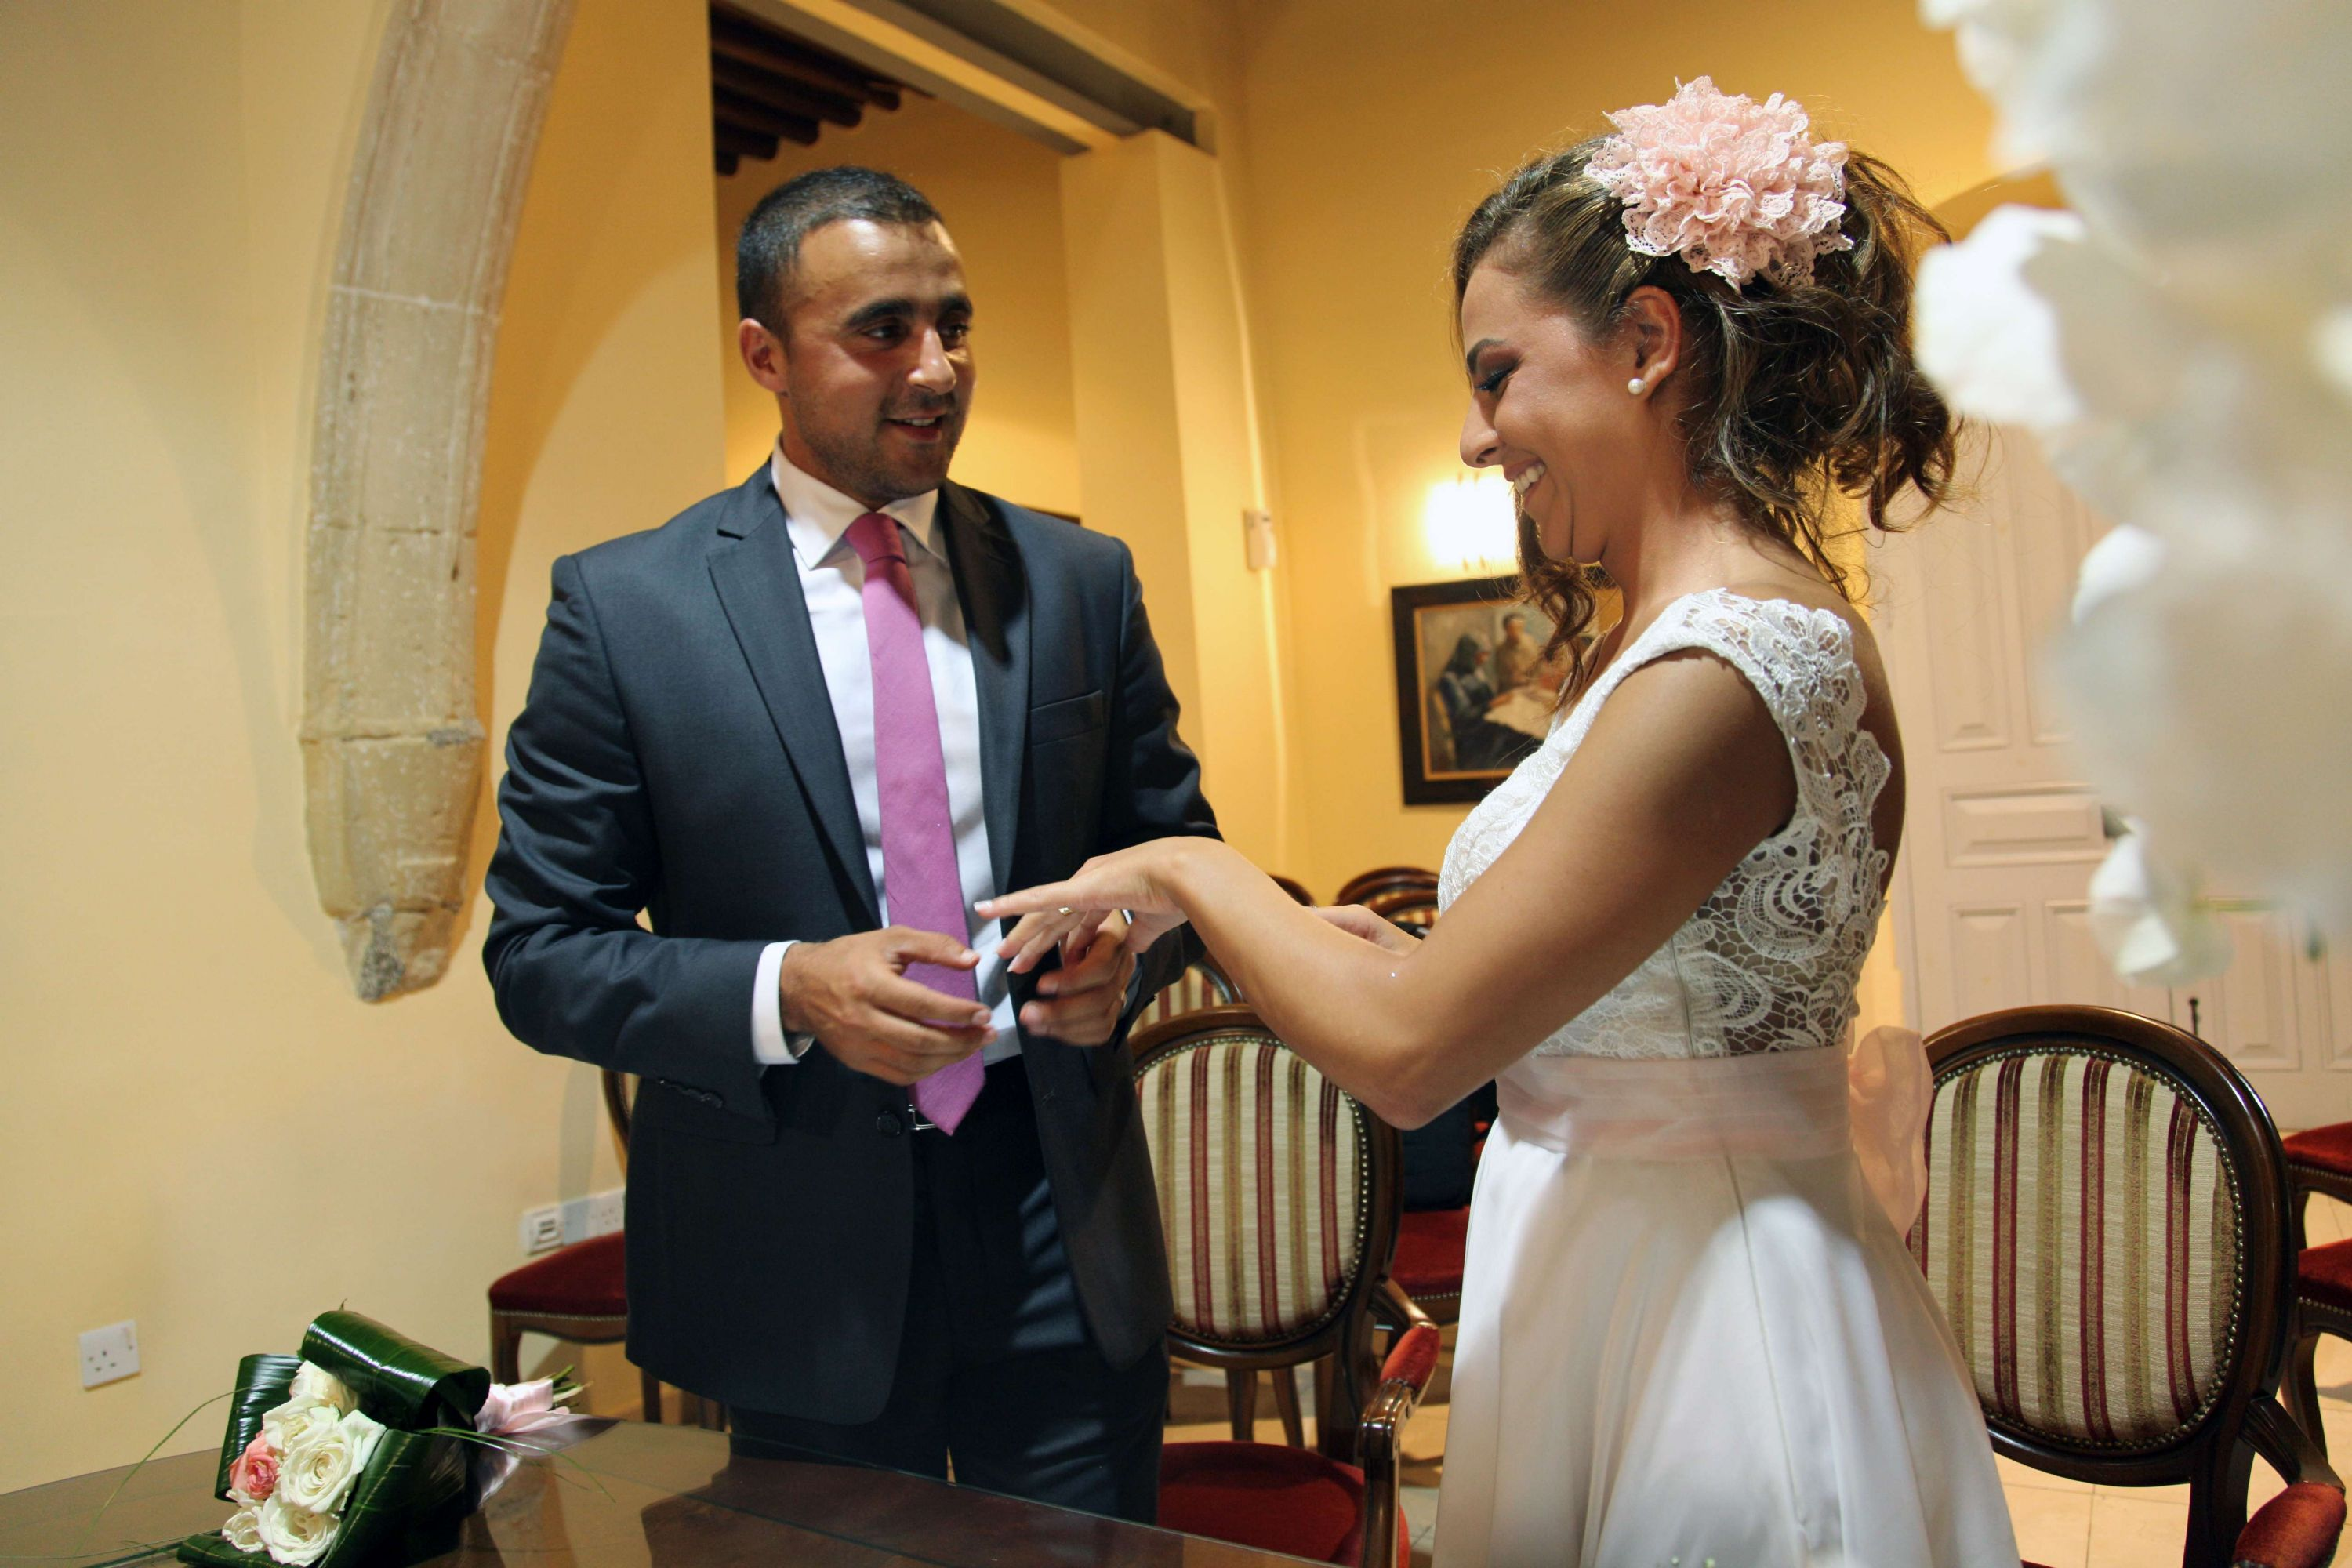 A Middle Eastern couple exchange rings during their wedding ceremony in Cyprus. (AFP)